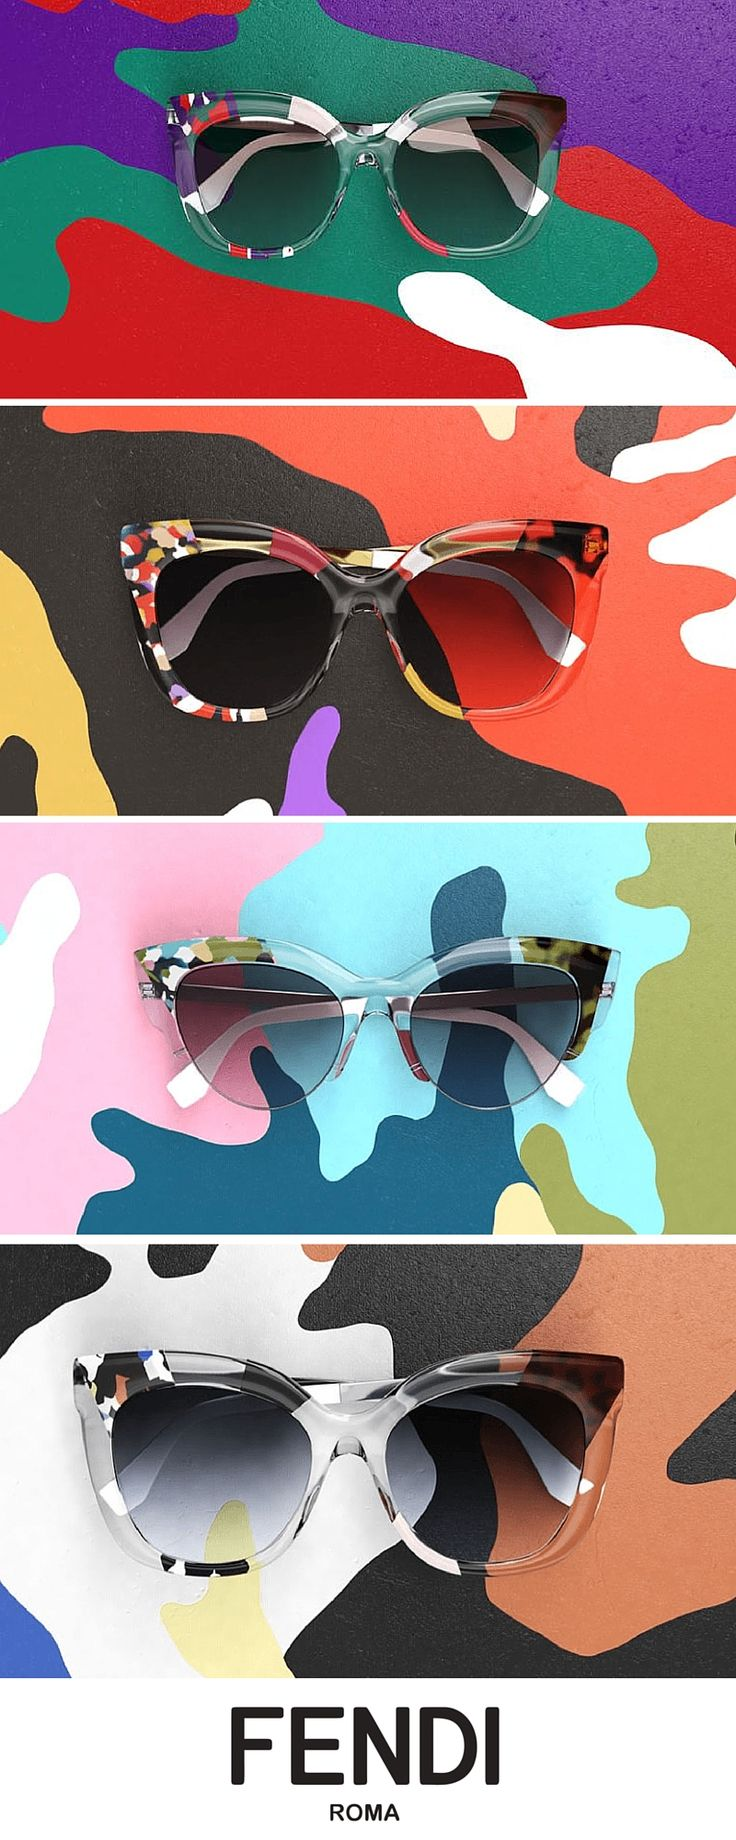 See the new Fendi Jungle collection! http://blog.smartbuyglasses.com/brand-spotlight/fendi-jungle-sunglasses-collection-naturally-wild-at-heart.html